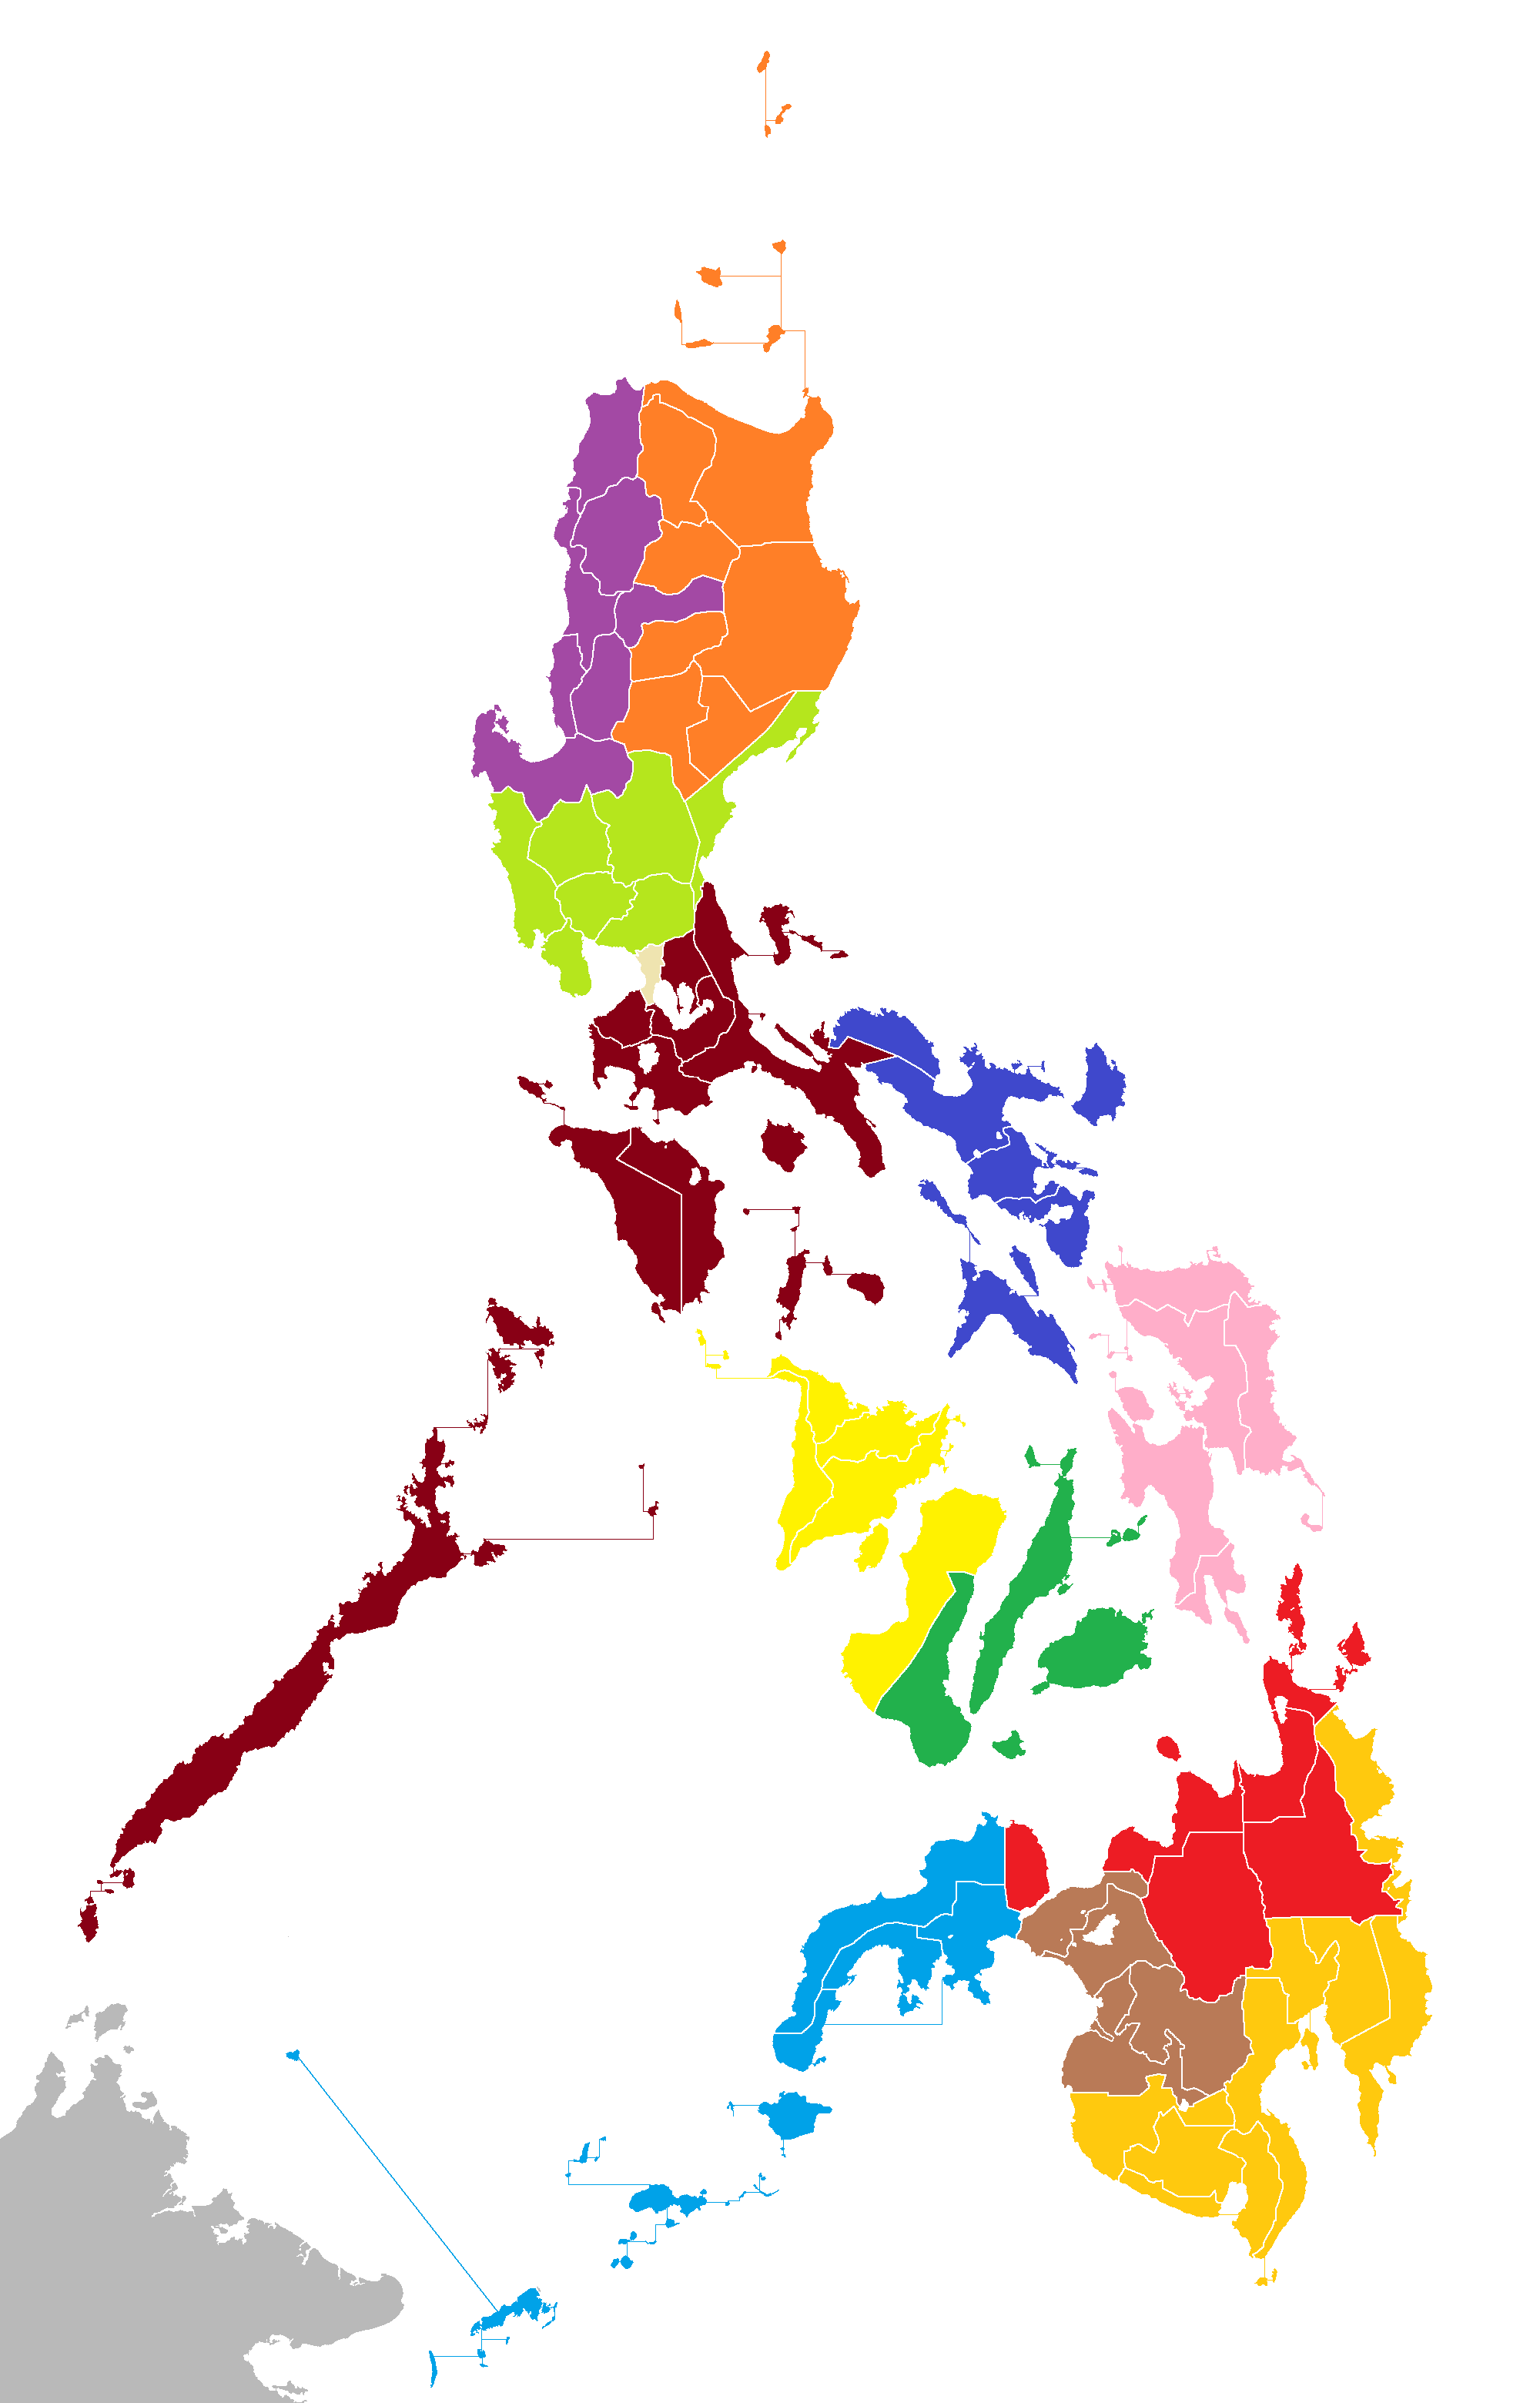 File:Philippine judicial regions.PNG.